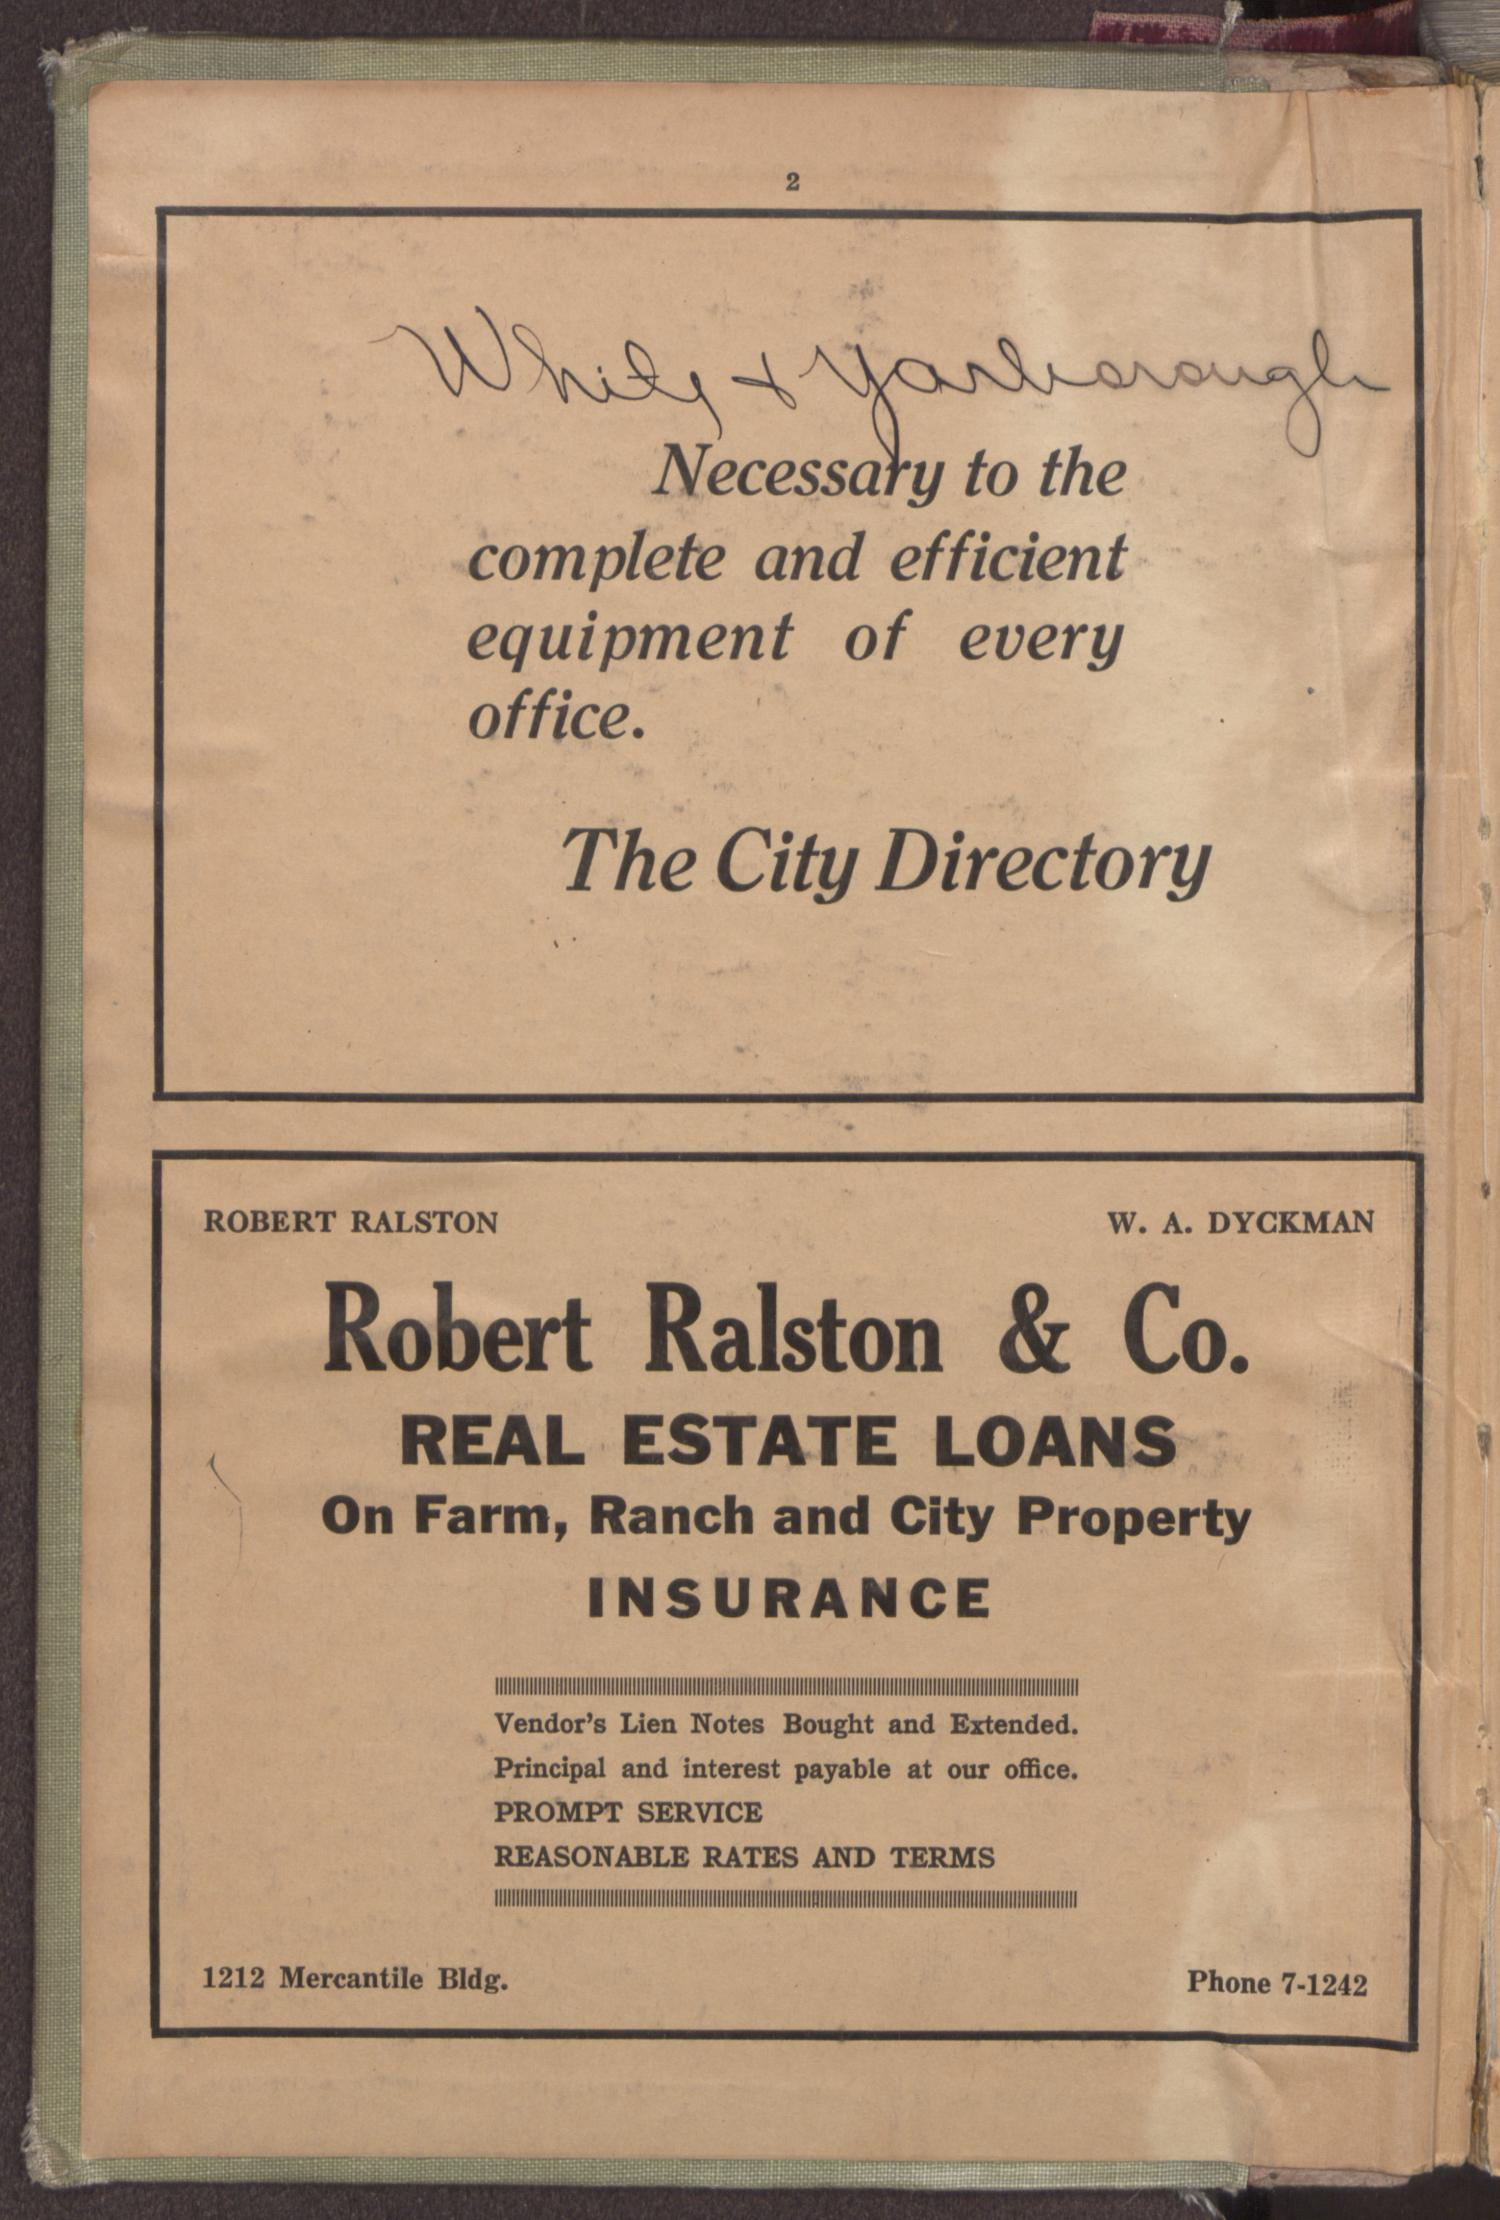 Dallas City Directory, 1934-35                                                                                                      FRONT INSIDE COVER